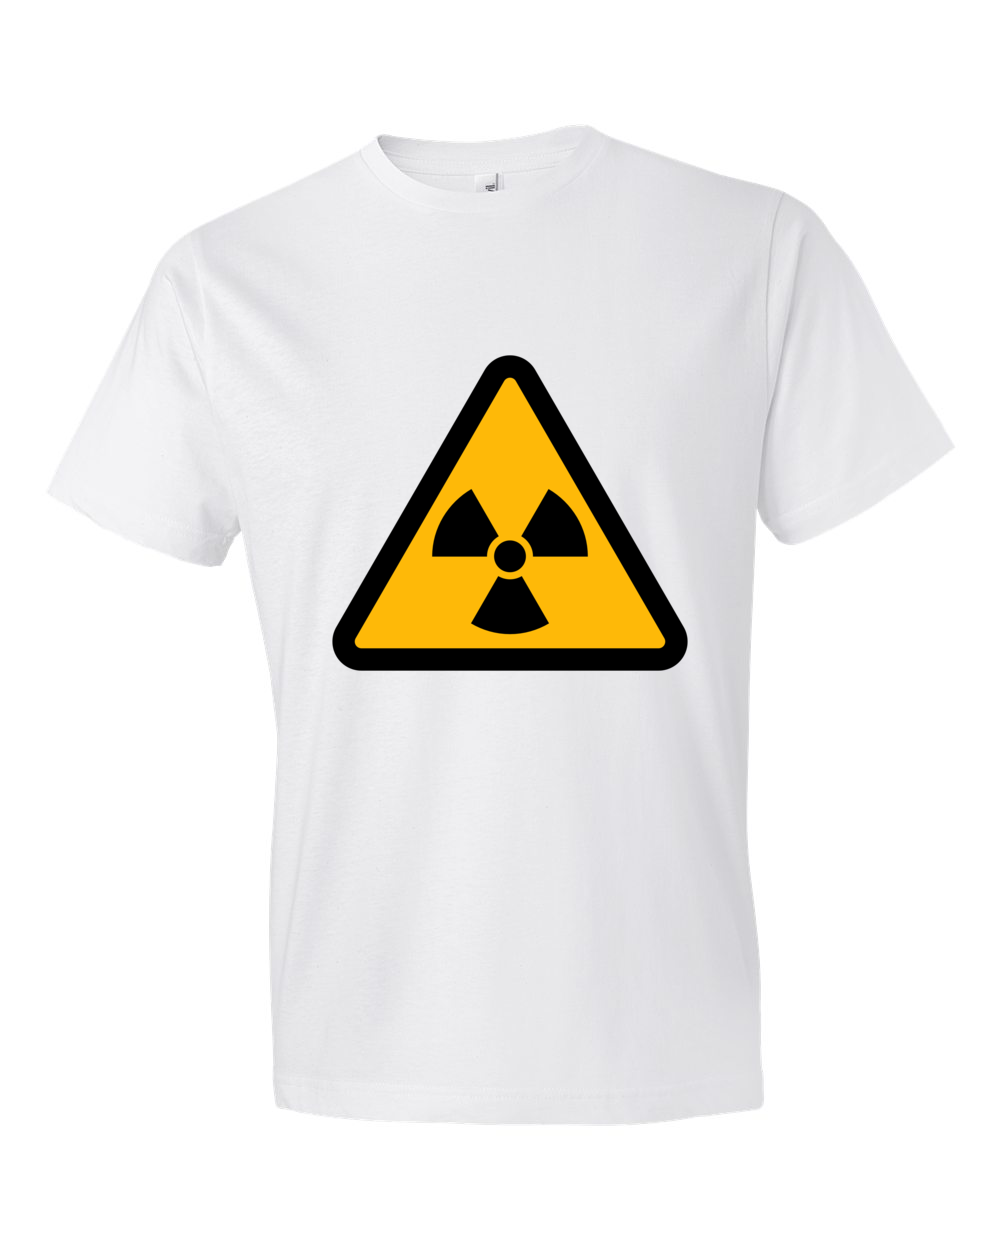 Radioactive-Lightweight-Fashion-Short-Sleeve-T-Shirt-by-iTEE.com